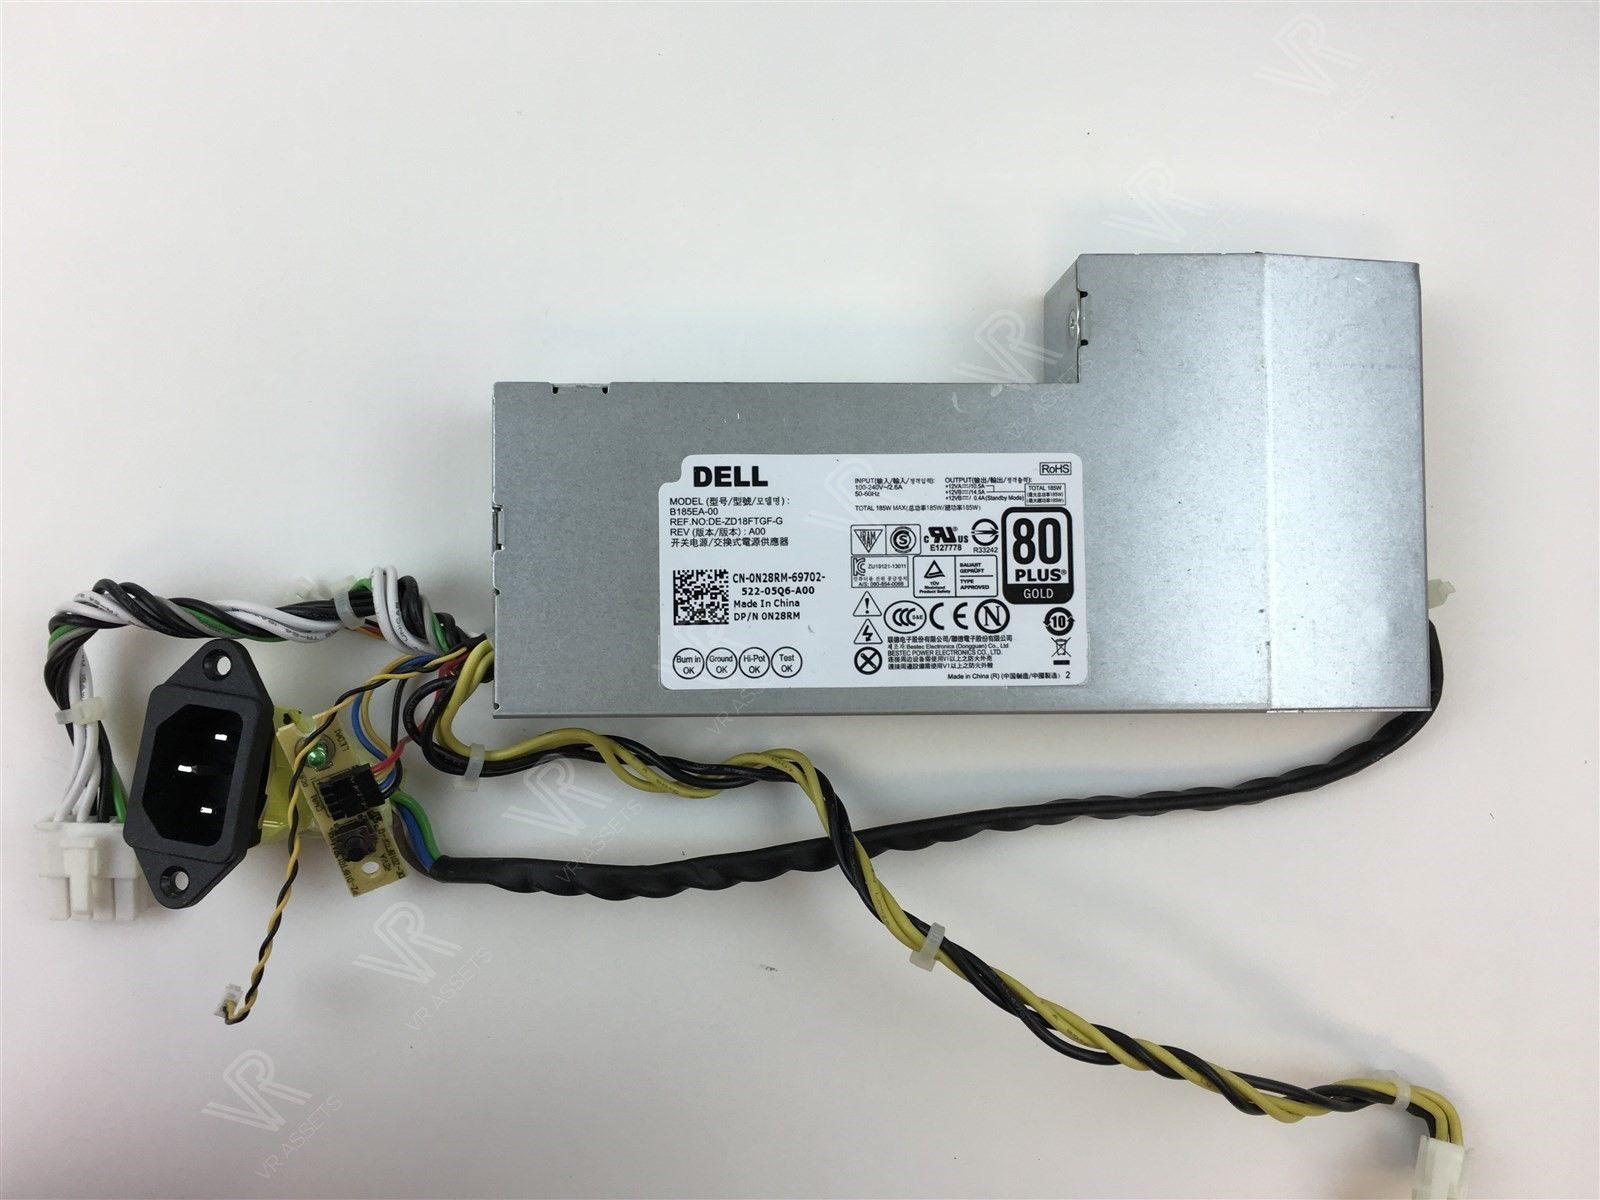 Dell Inspiron 23 AIO PC 5348 Series 185 Watt Power Supply N28RM 0N28RM